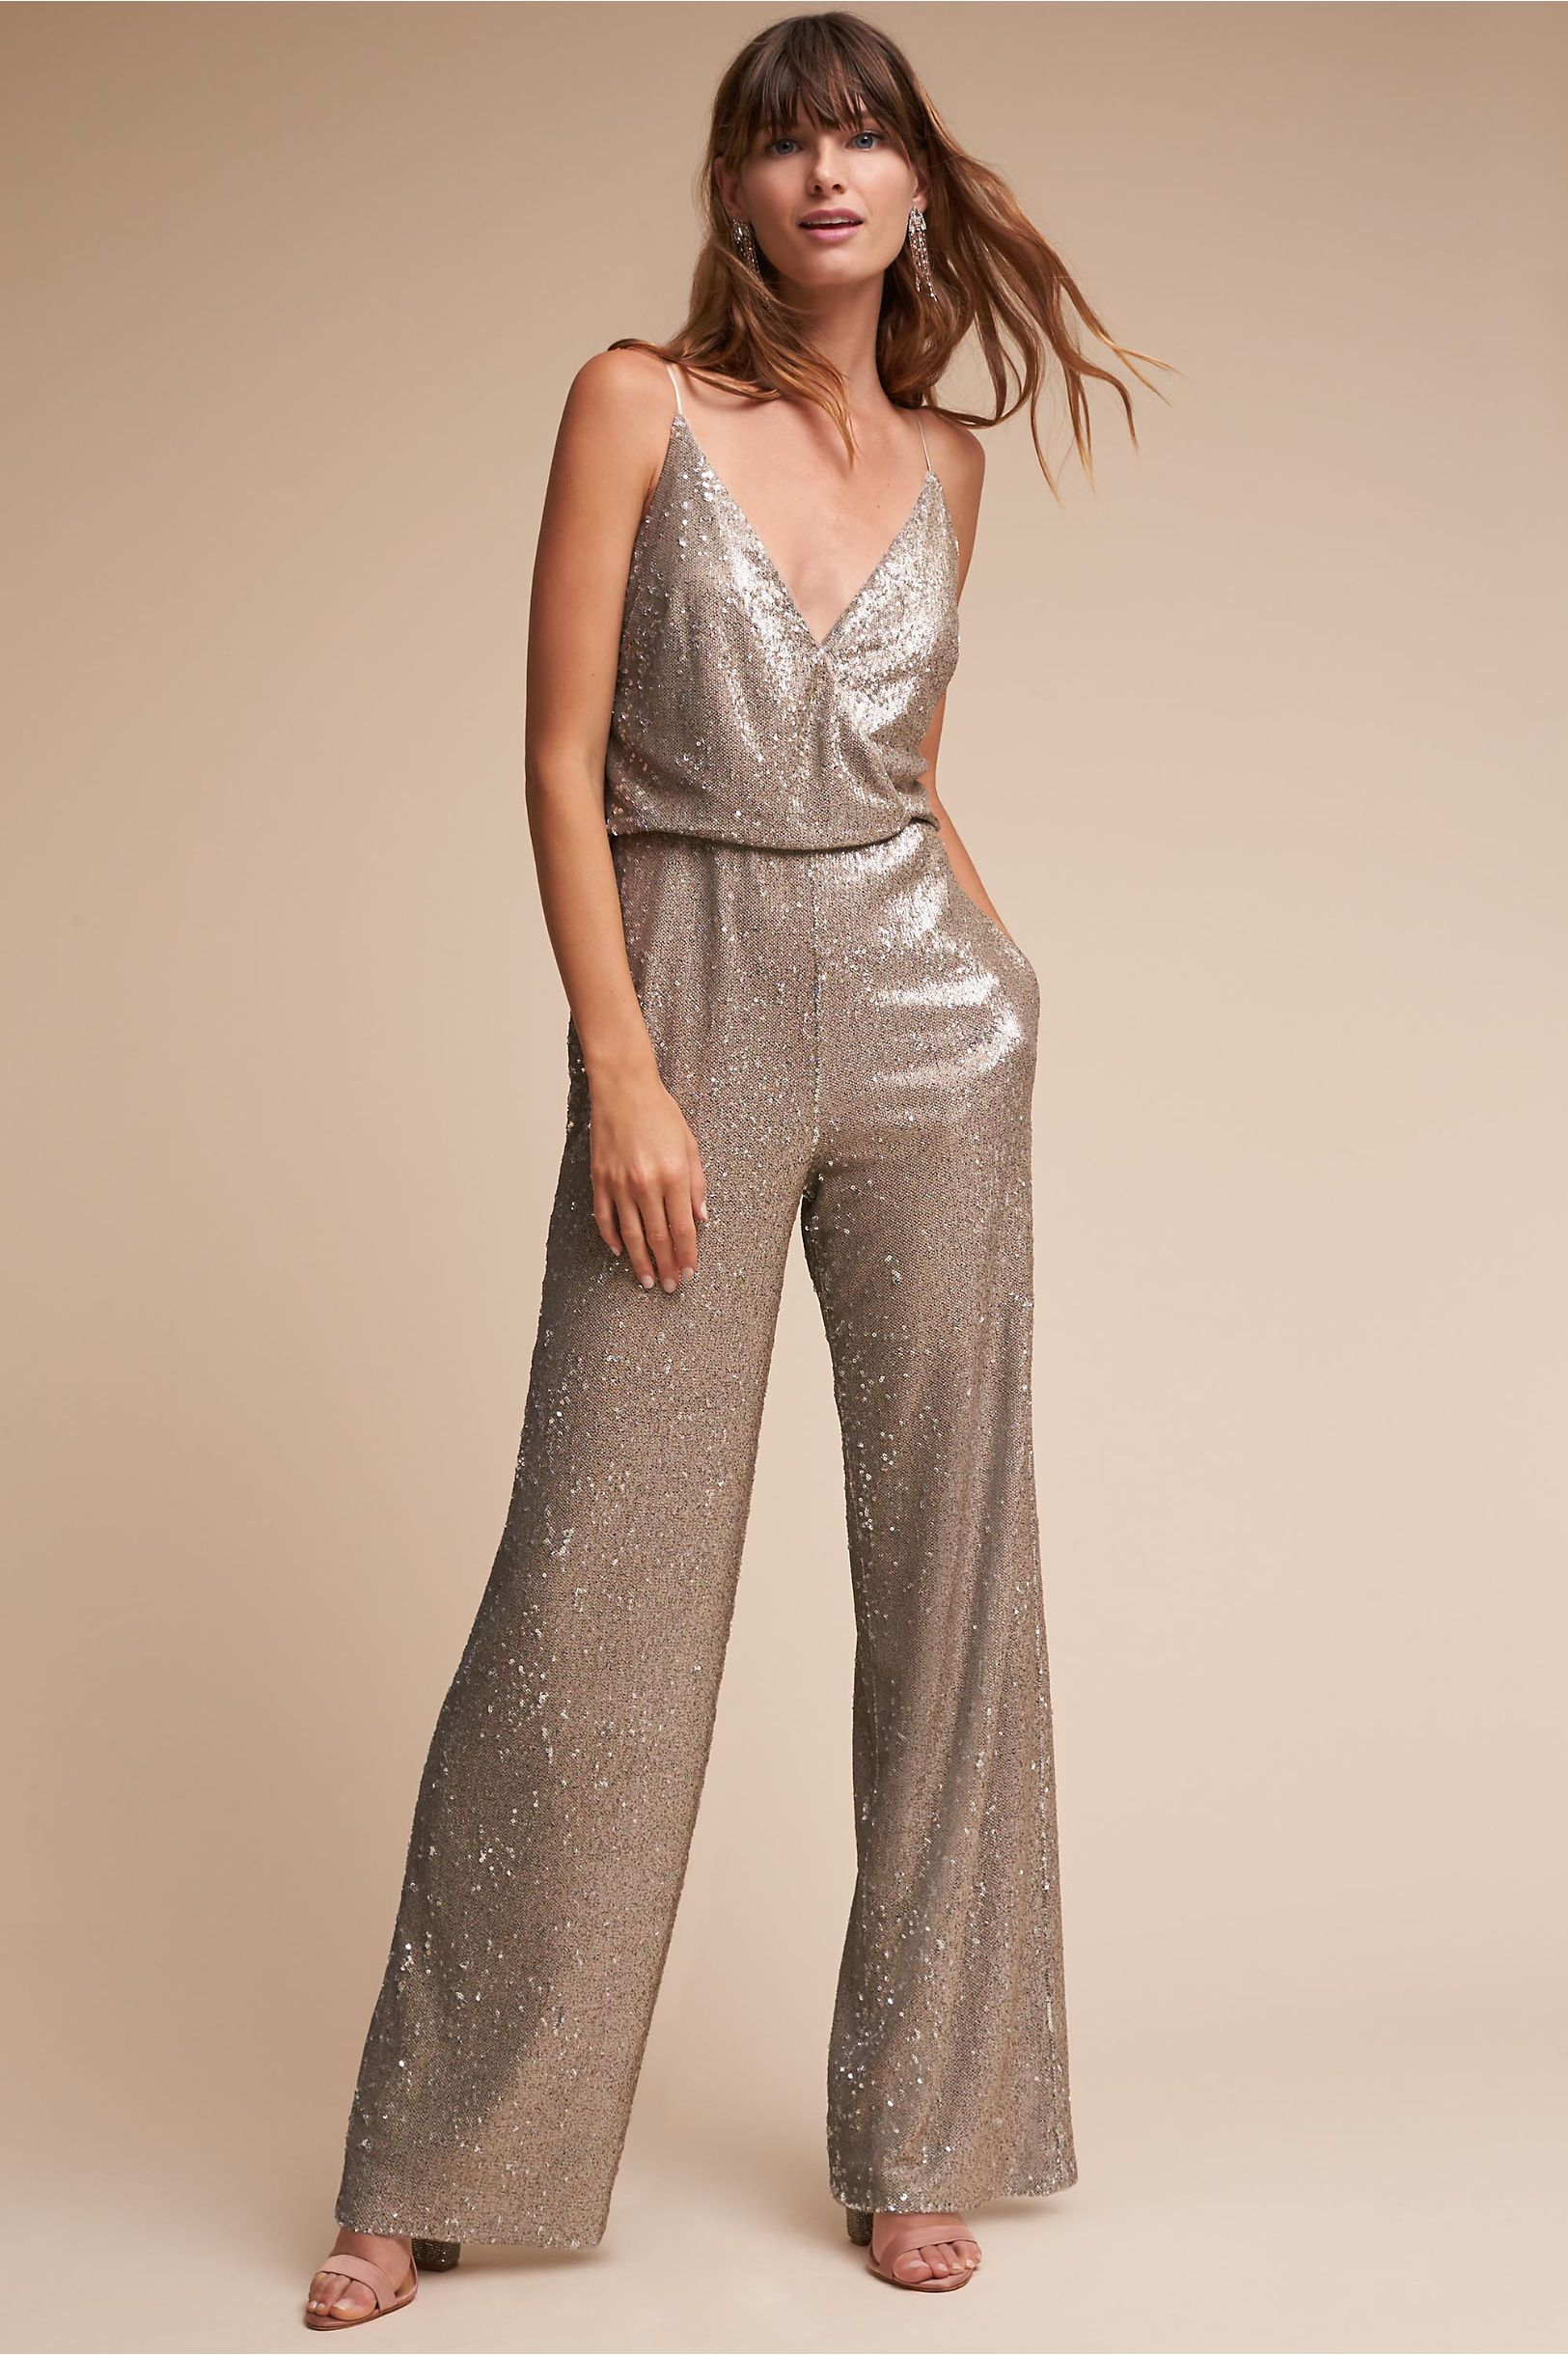 f842265a21b my new reason for living- the sequin jumpsuit i will be wearing to your  wedding.